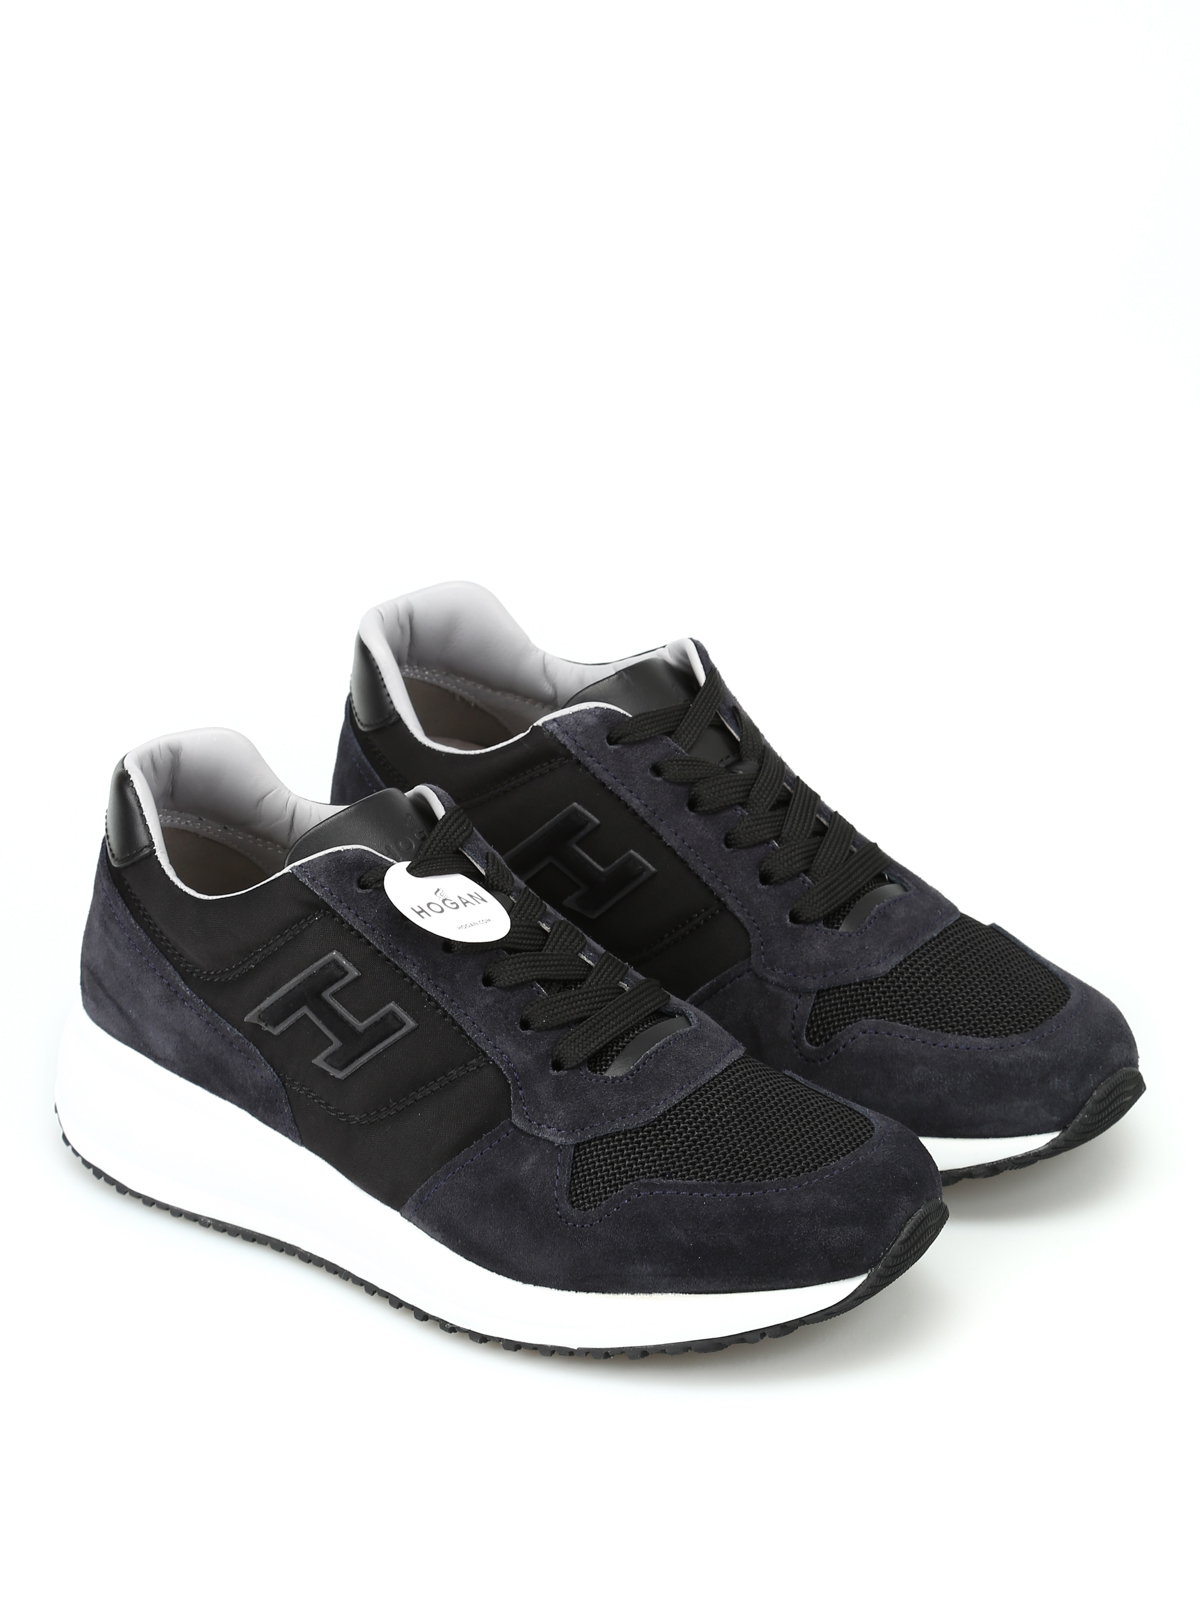 Trainers Hogan - Interactive N20 leather sneakers - HXM2460K670IGH0533